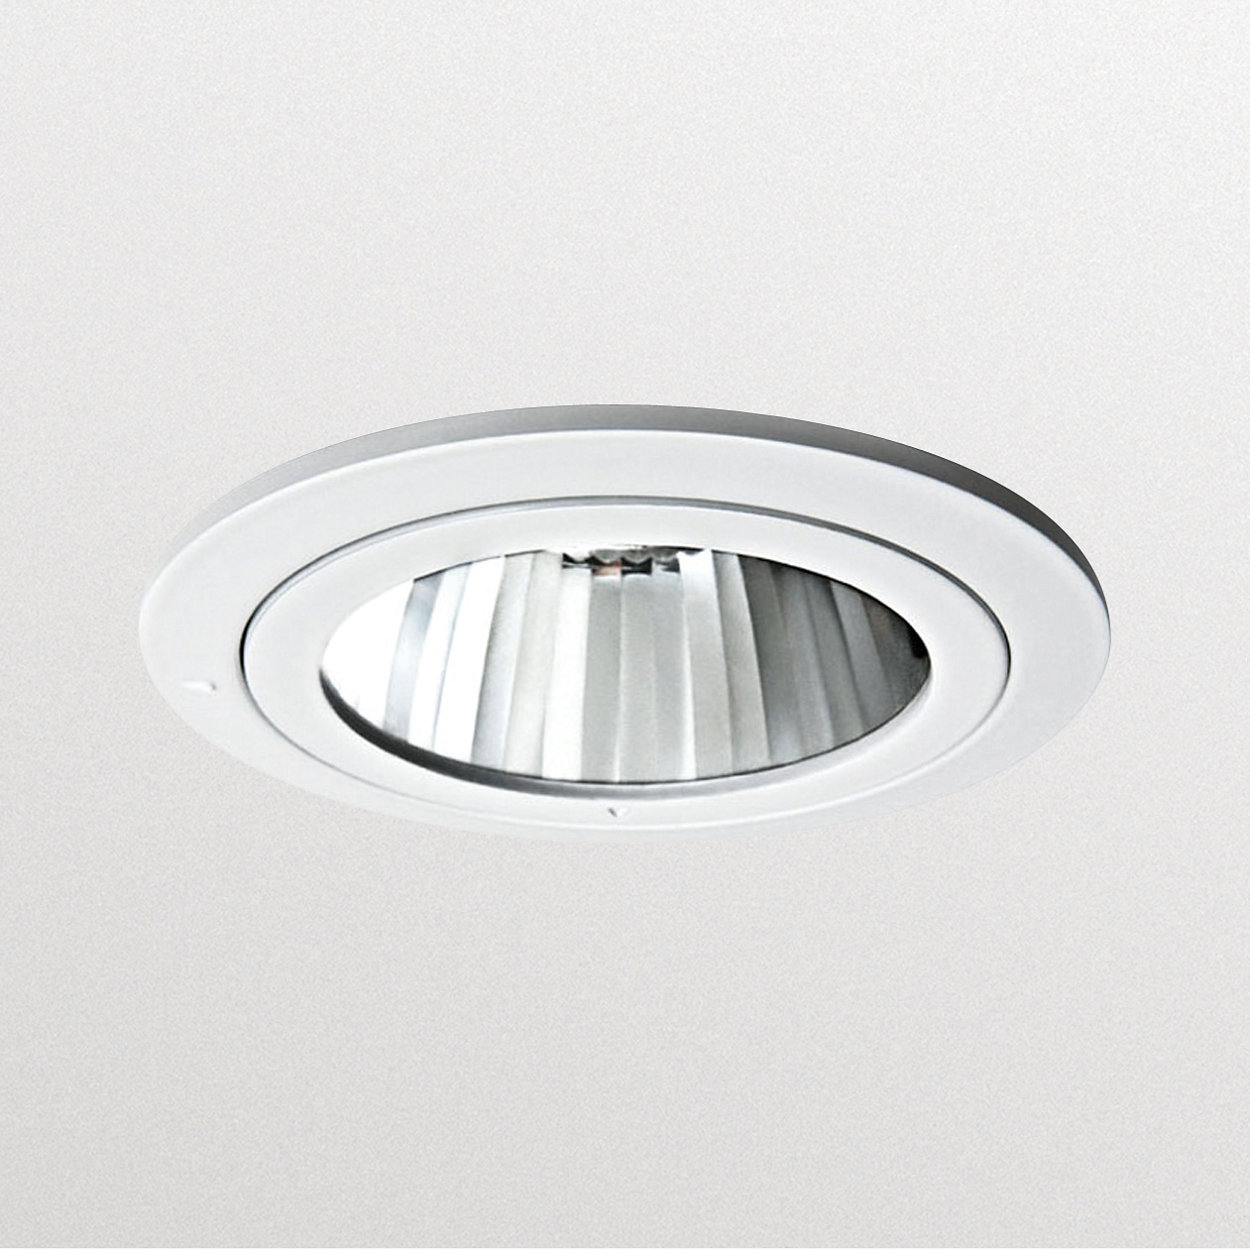 Smart Halogen Downlight – a reliable way to make your merchandise stand out